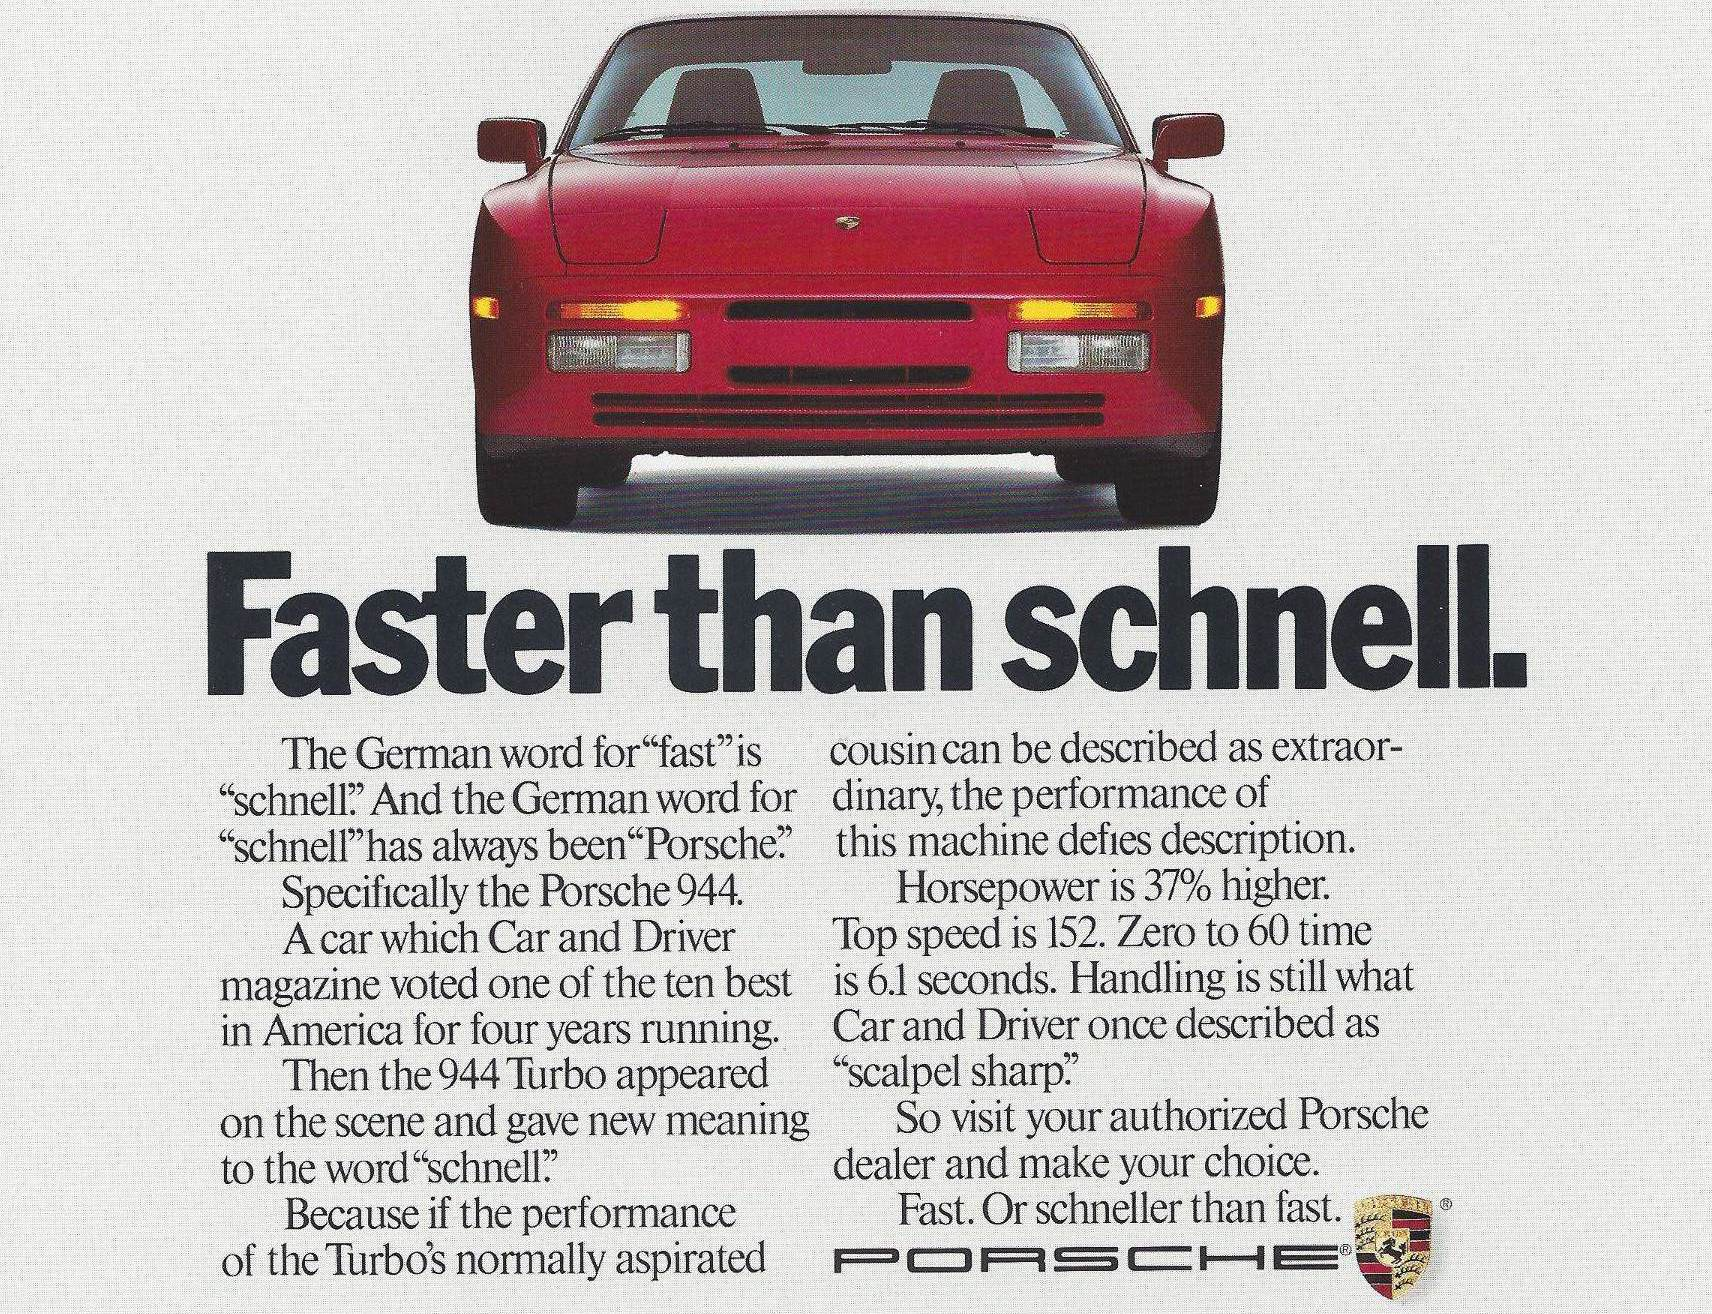 A Brief History of the Porsche 944 - Don't Buy One Before Reading This